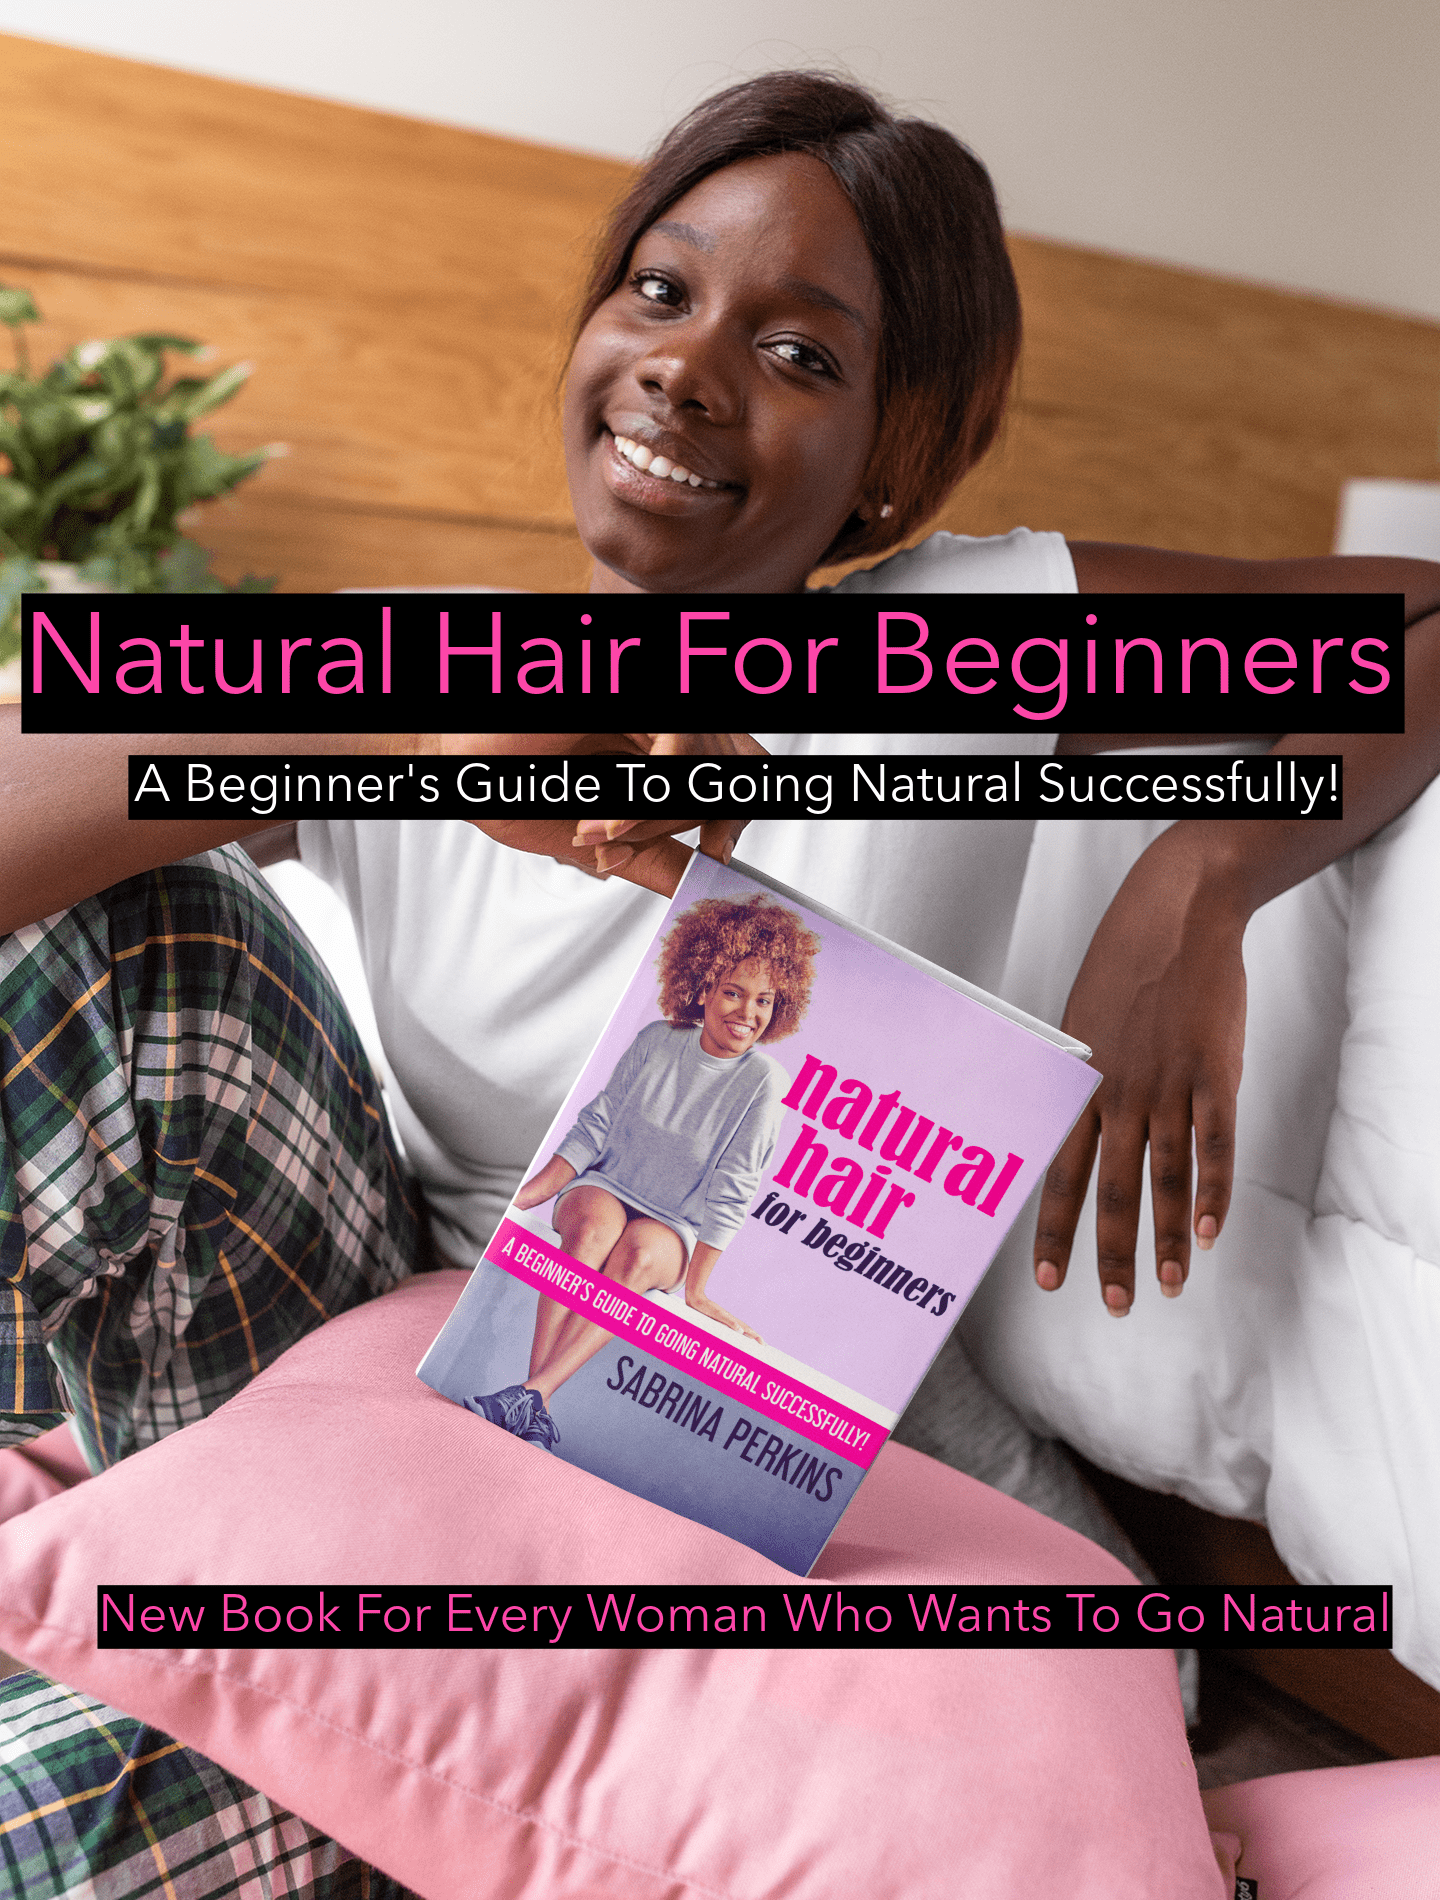 Natural Hair For Beginners Is the only book you need for going natural. Extensive background information, step-by-step directions are only a few of the tips